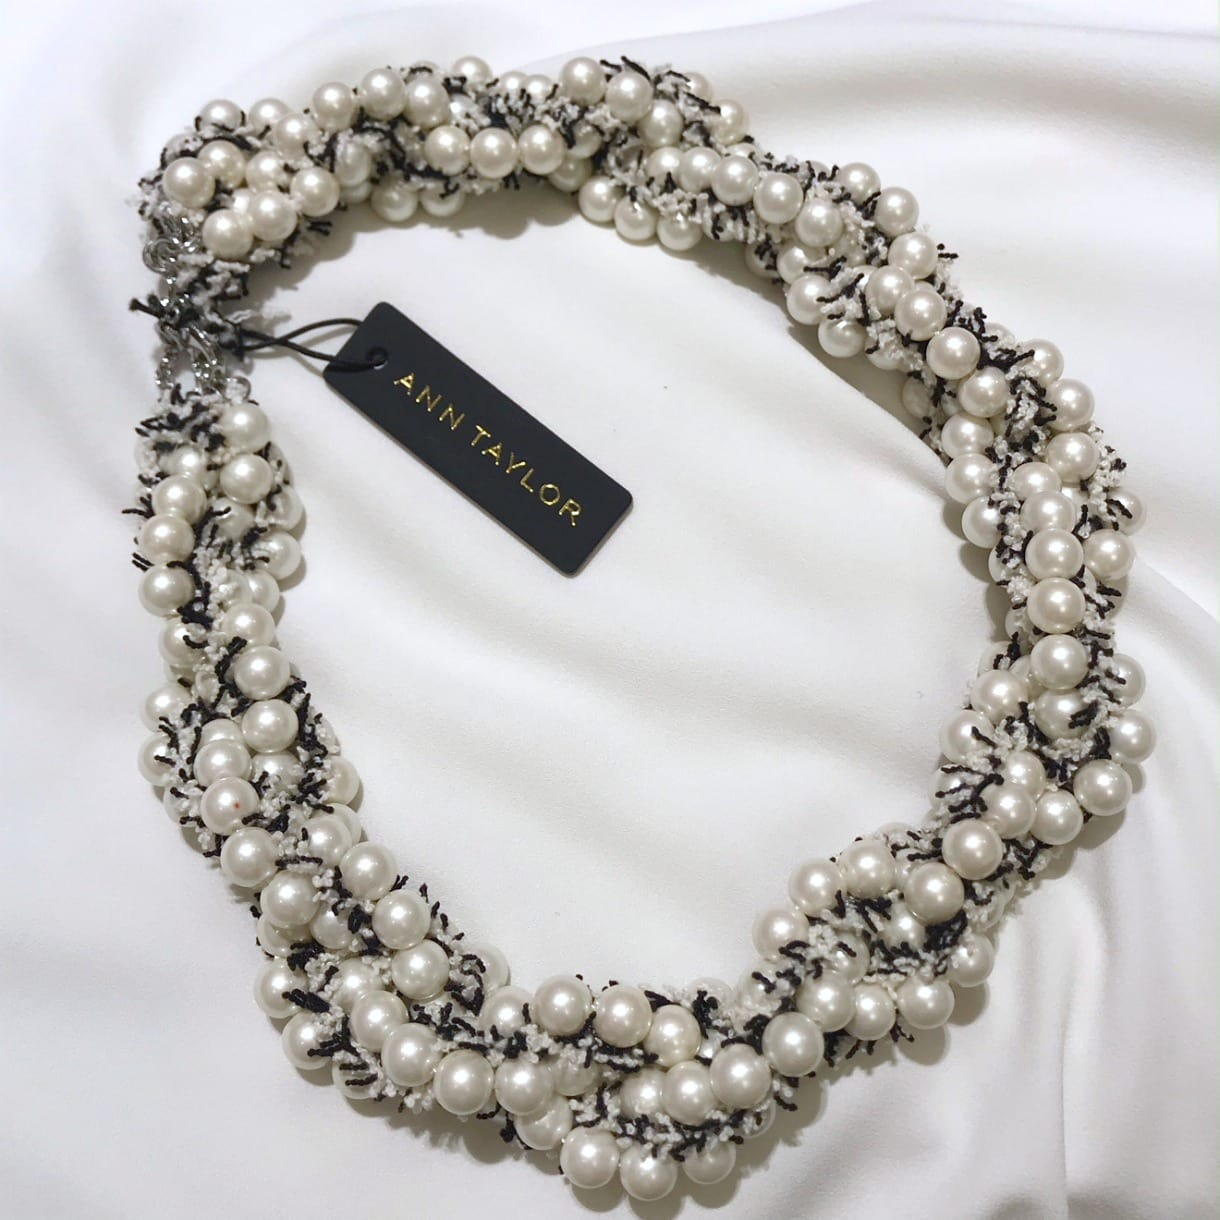 Pearl and Tweed necklace from Ann Taylor on A Well Styled Life